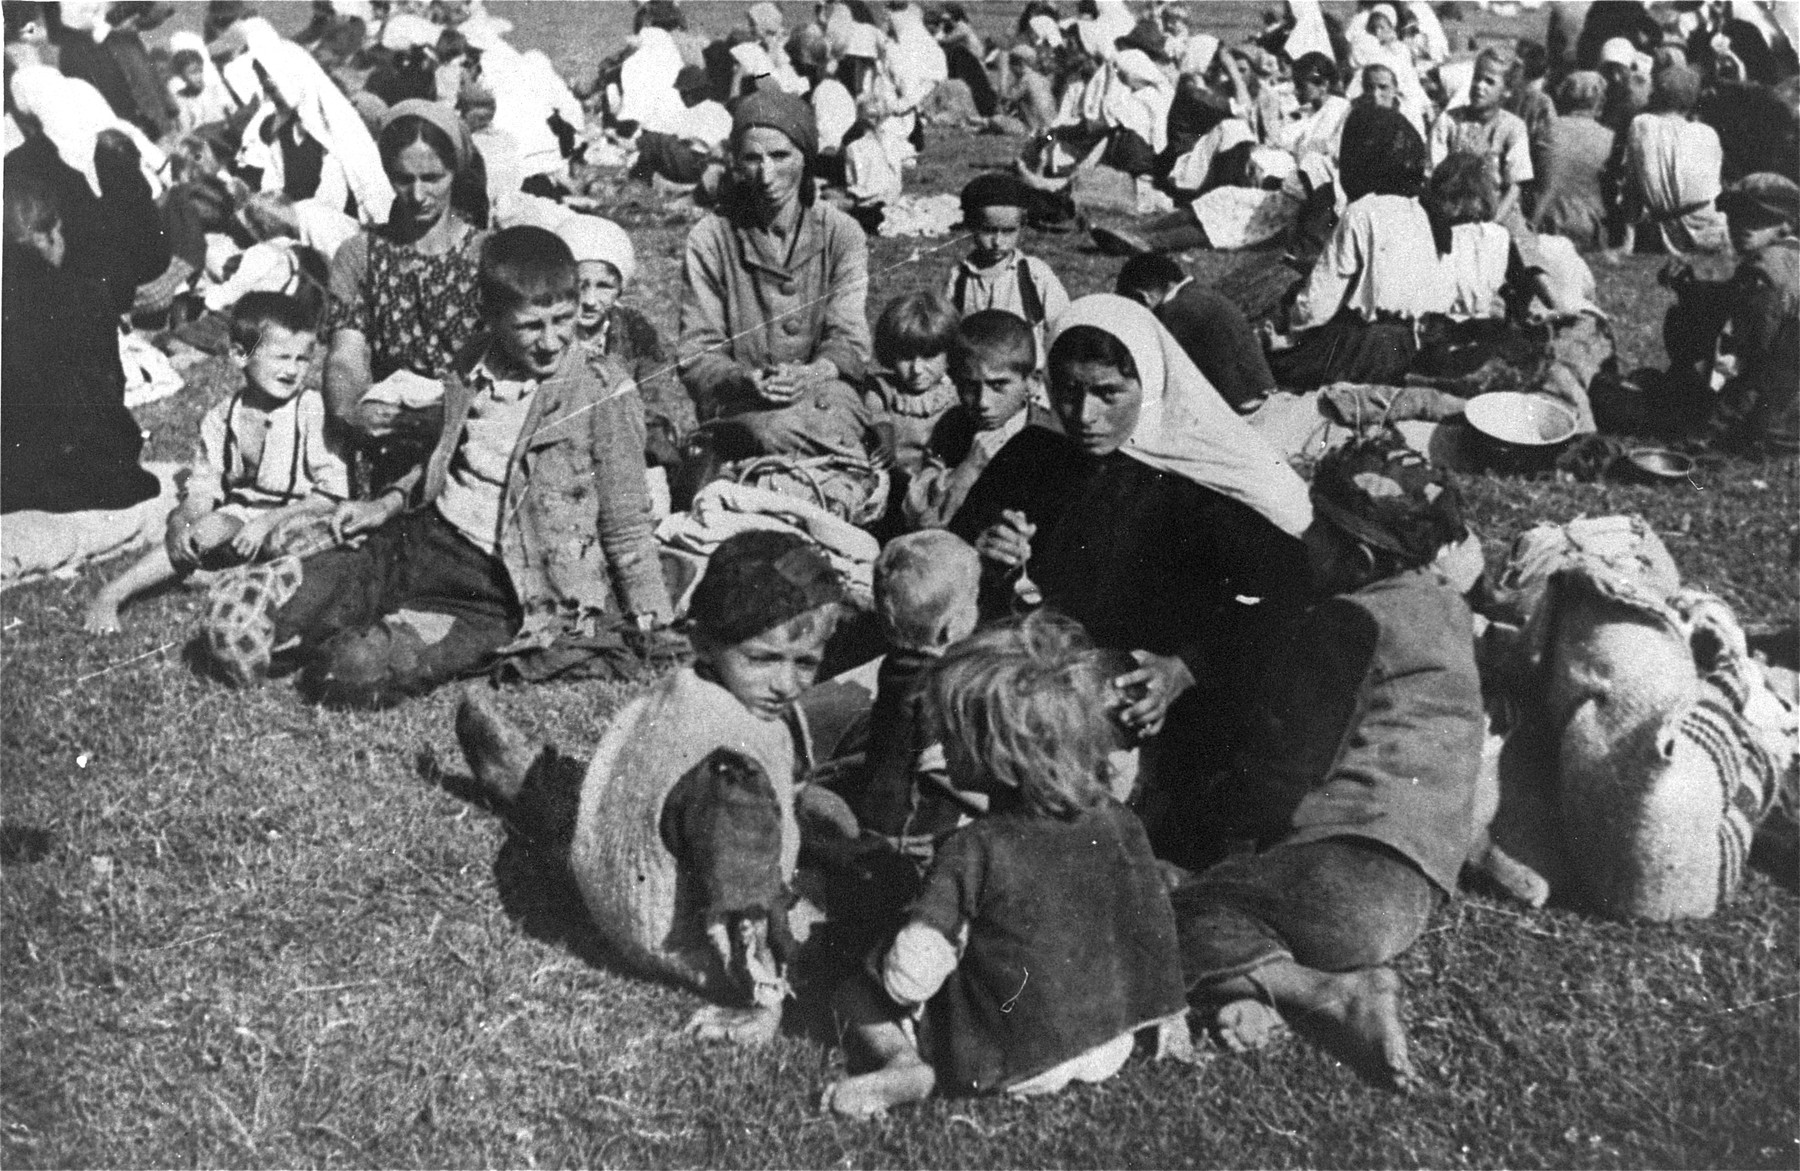 Serbian women and children from the Kozara region who have been deported from their homes, sit outside at the Daruvar concentration camp.